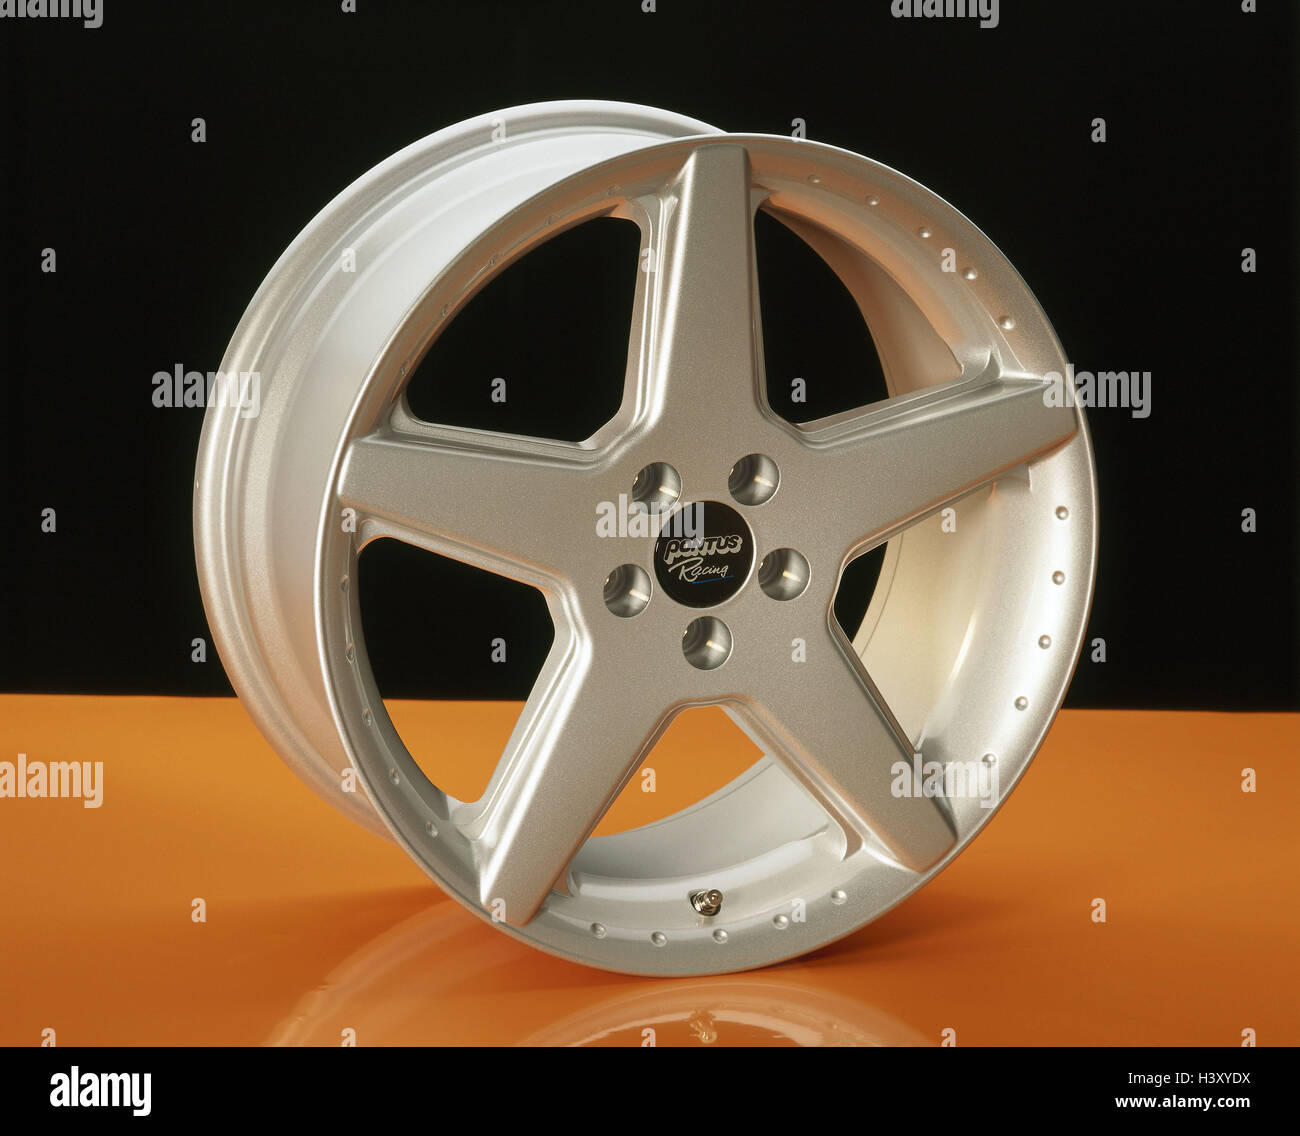 Aluminium wheel rim aluminium rim, alloy wheel, wheel rim, car accessories, autowheel rim, product photography, - Stock Image